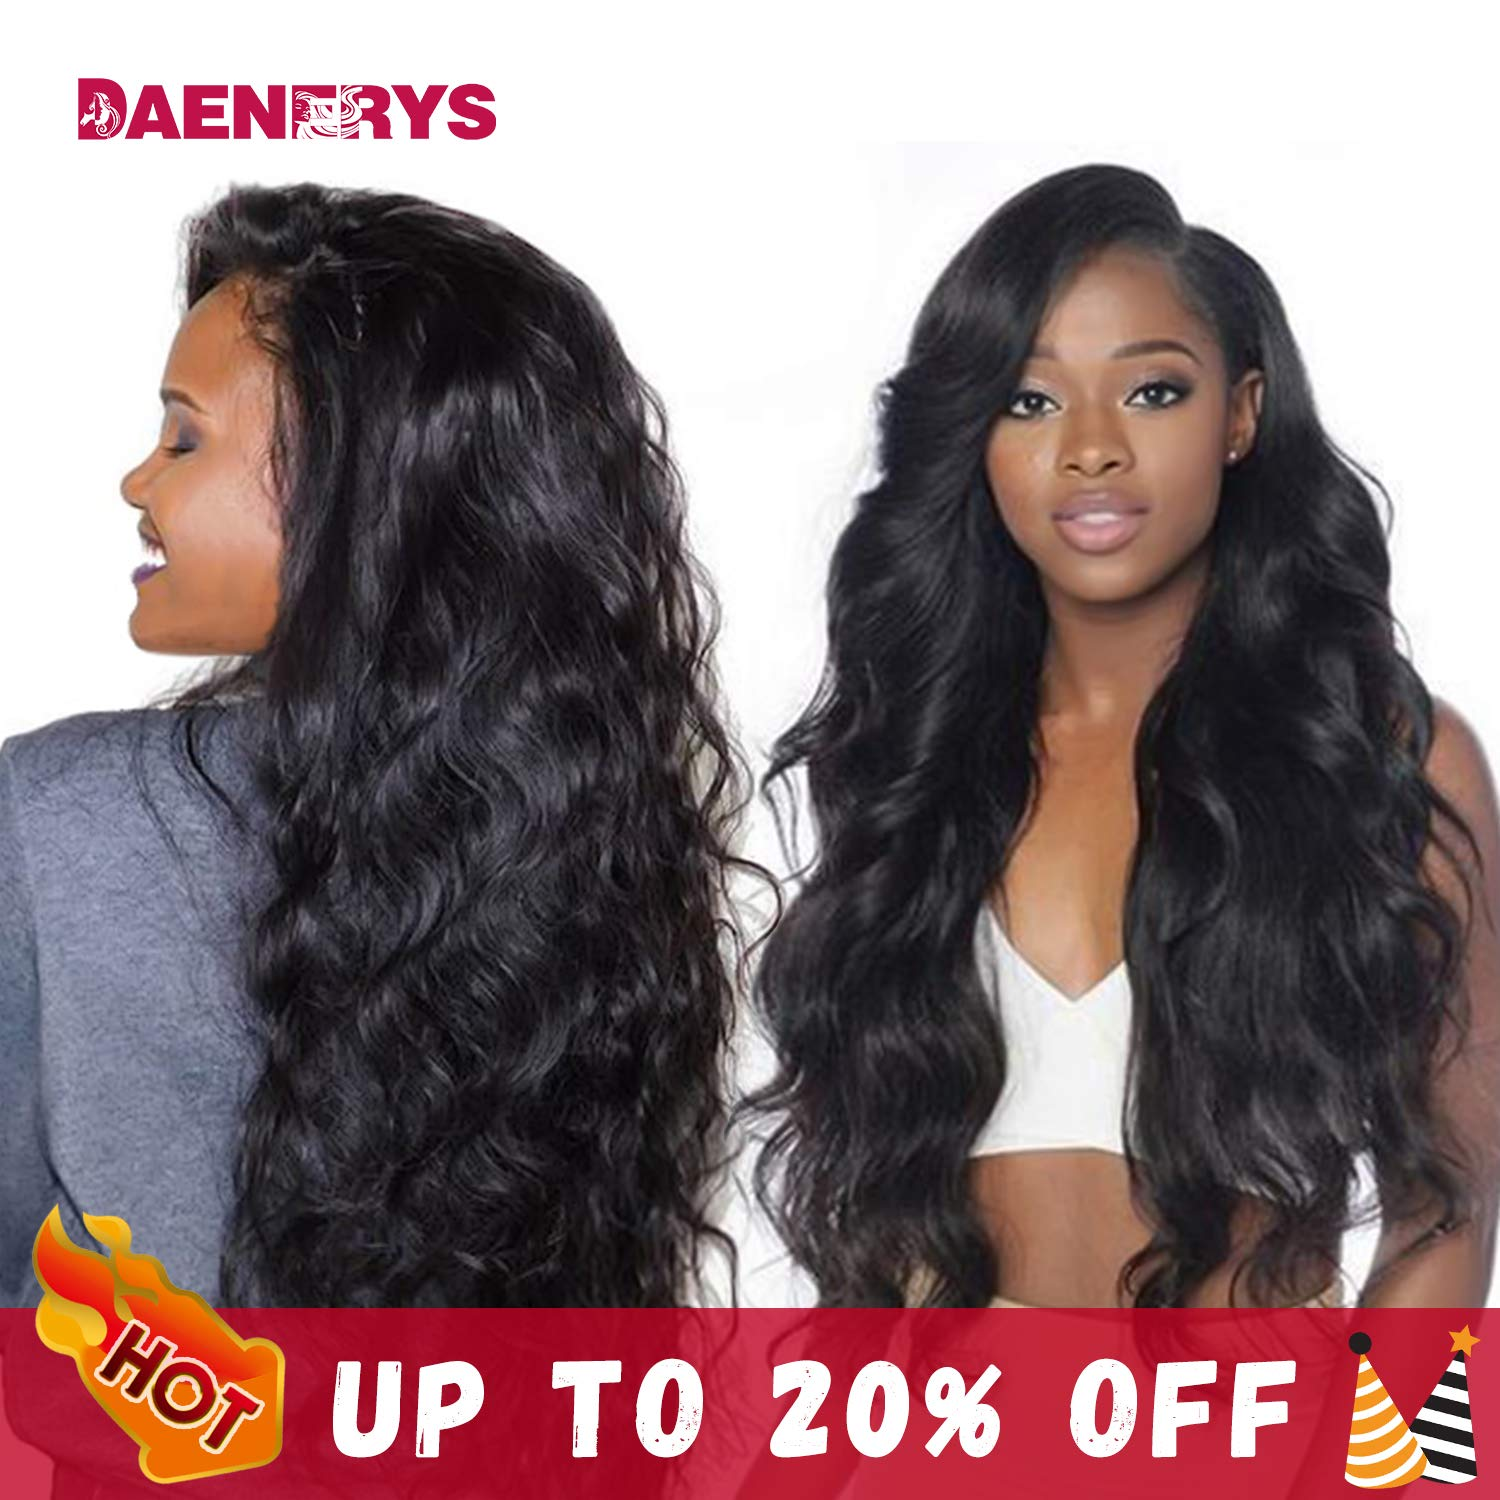 360 Lace Frontal Wig 26inch Human Hair Wig Lace Front Wig Body Wave 150% Density Human Hair Lace Front Wigs Pre Plucked Hairline with Baby Hair